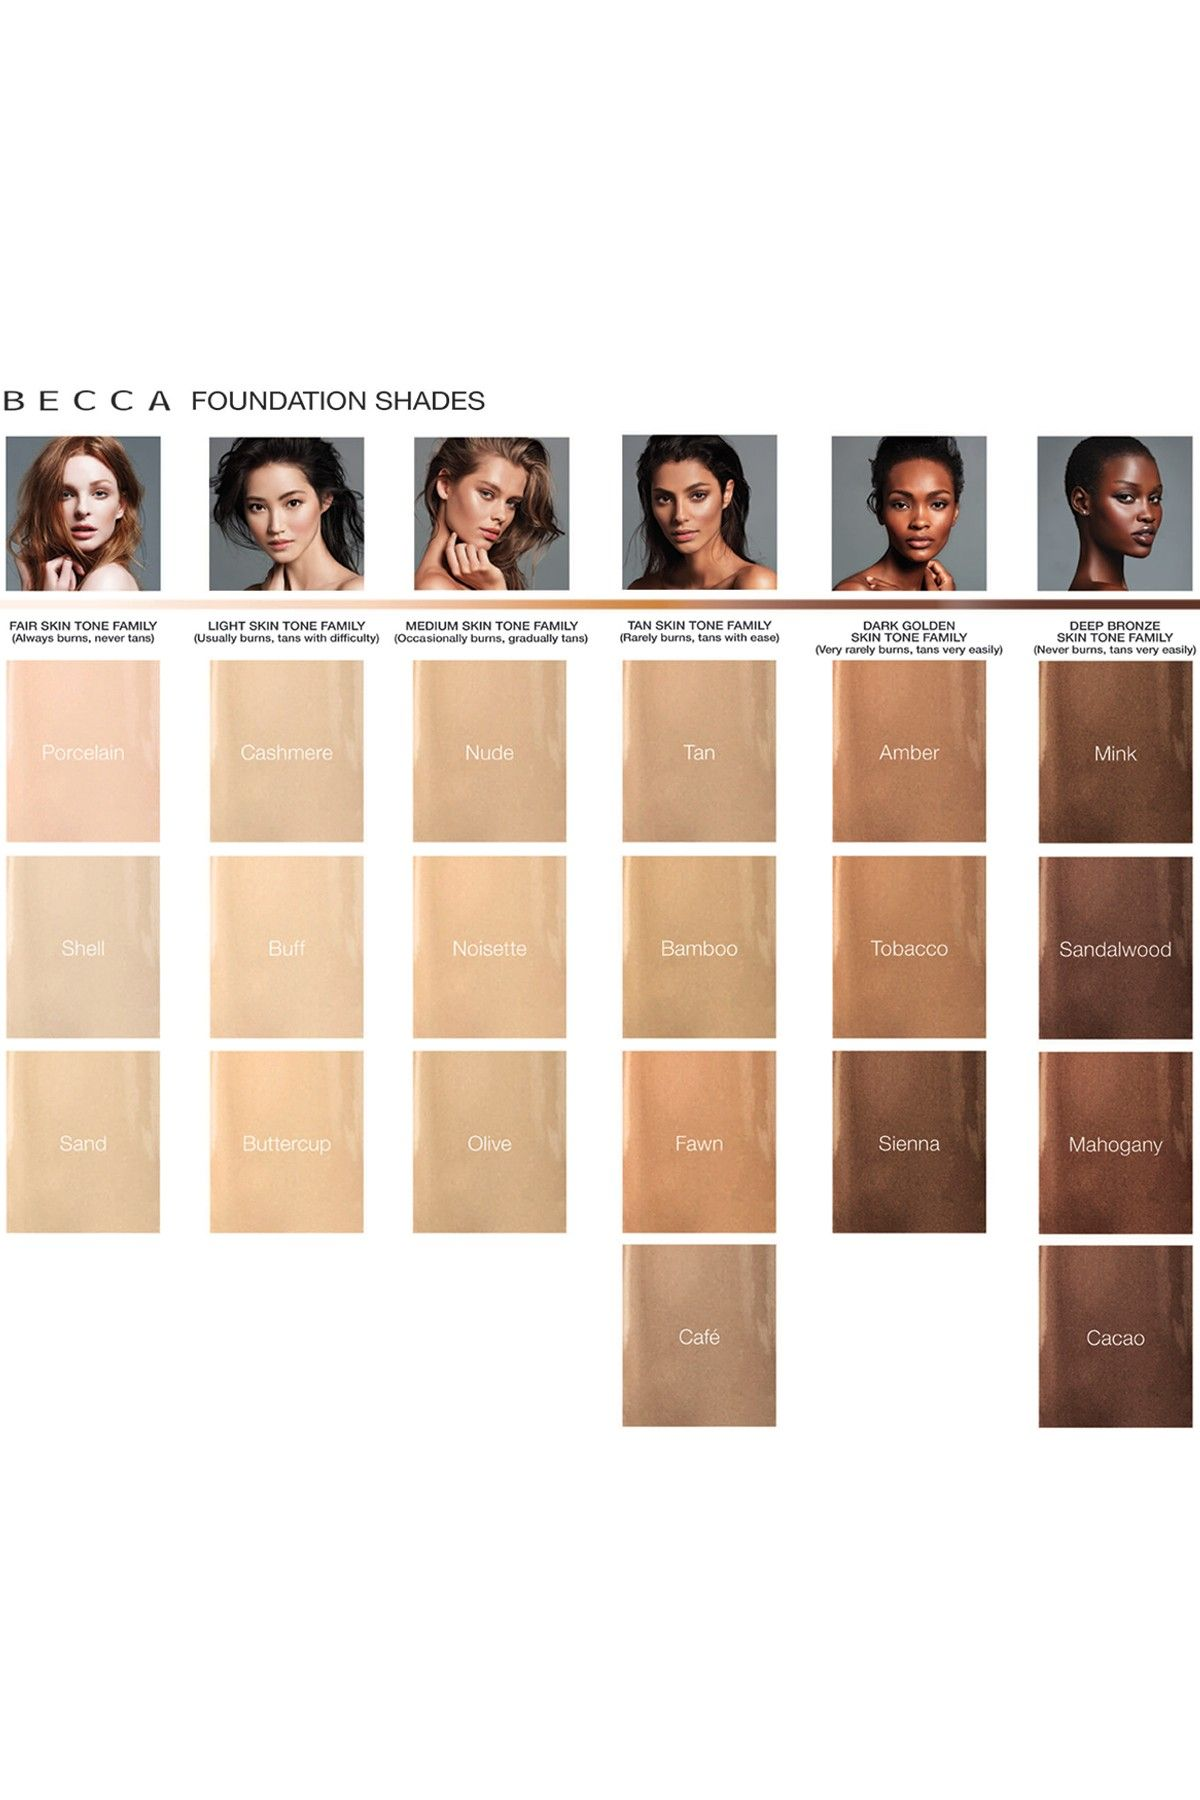 Becca Foundation Color Chart Makeup Looks Pinterest